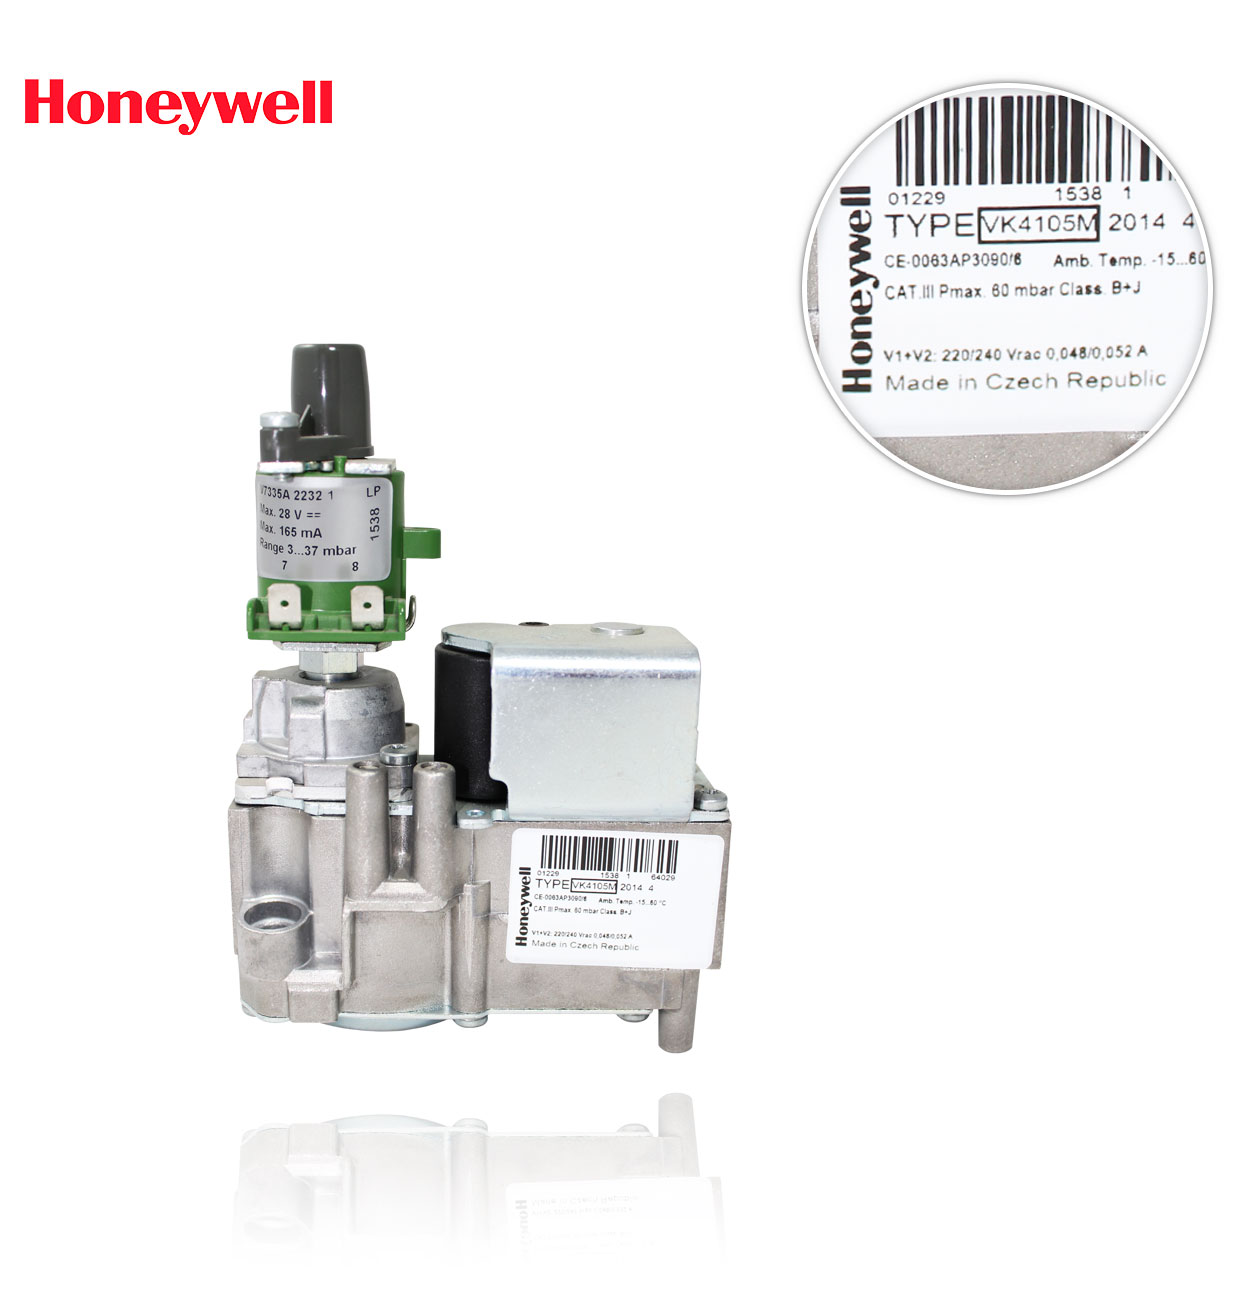 VK 4105 M 2014 B  BLOQUE REGULACION HONEYWELL